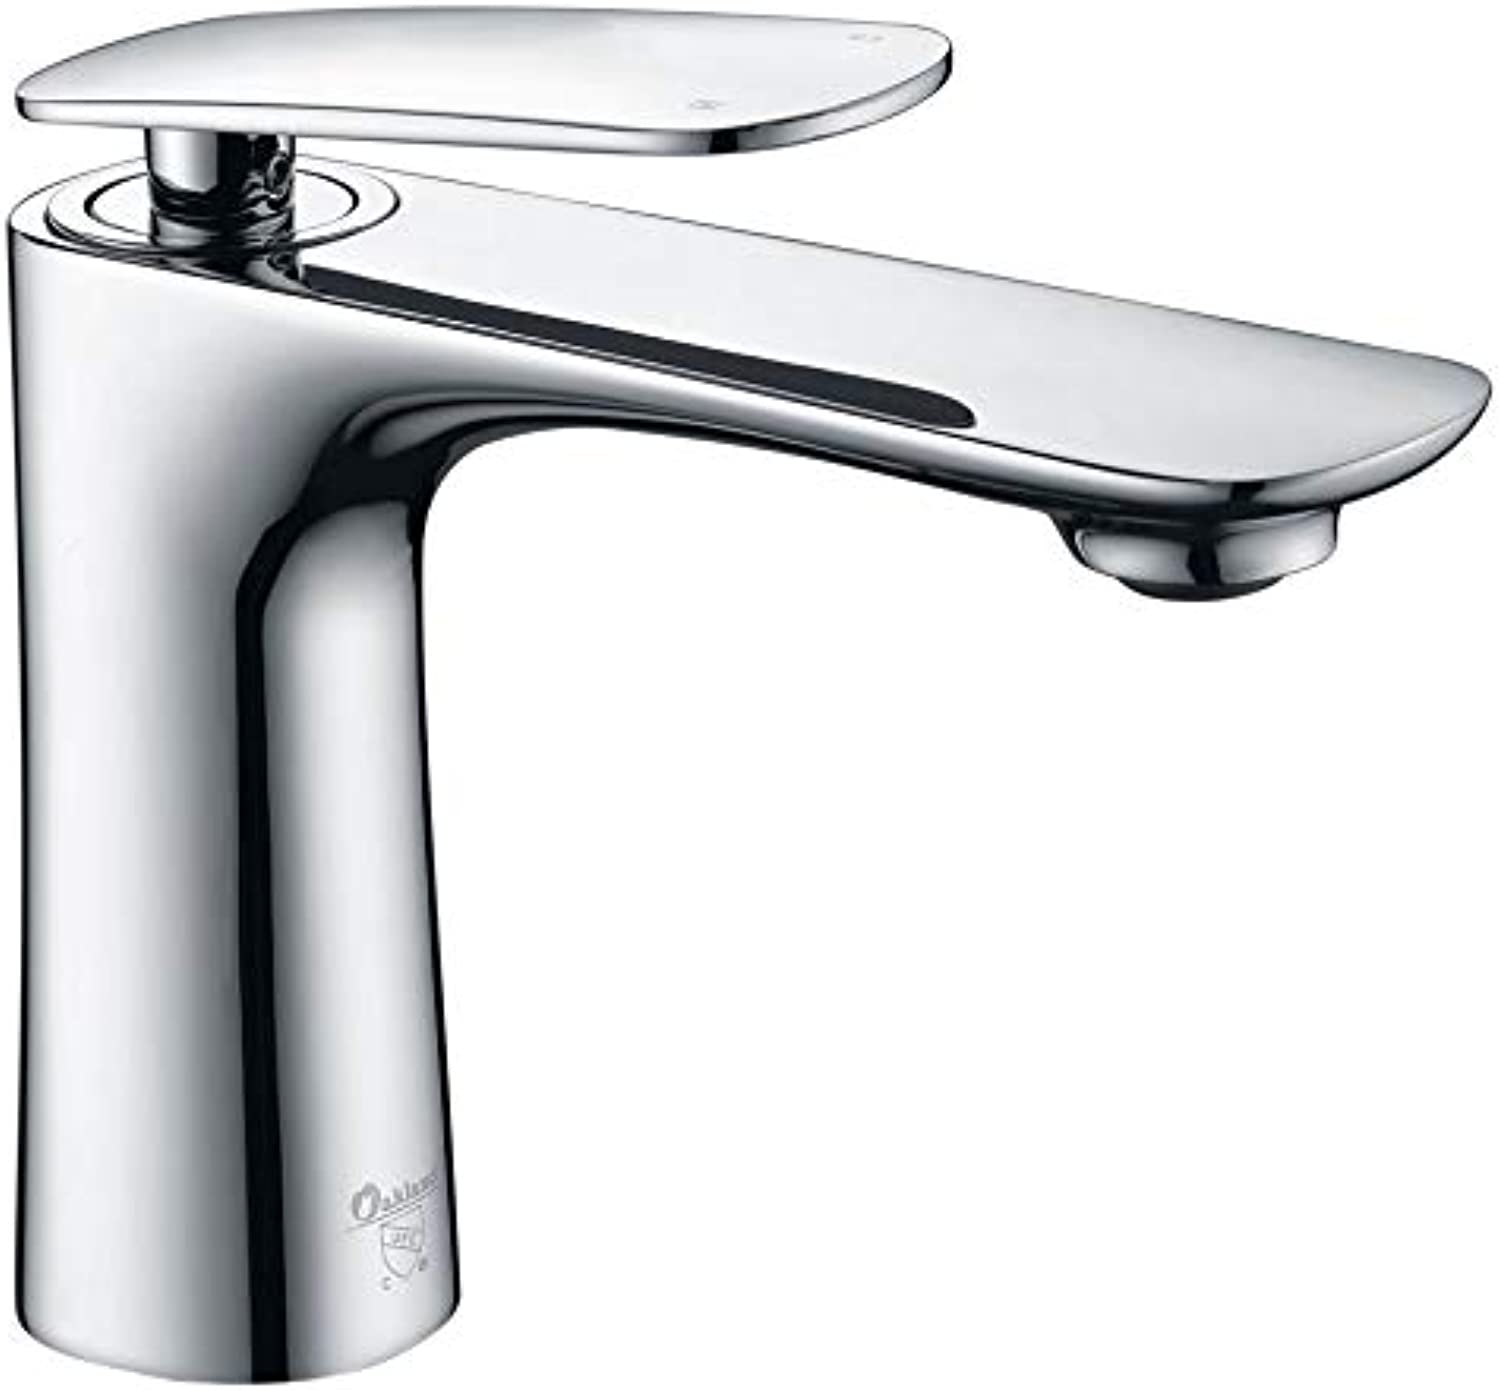 Rfsbqlcs Bathroom sink faucet - Modern faucet - kitchen bathroom sink faucet, modern design hot and cold faucet with standard accessories (without base)